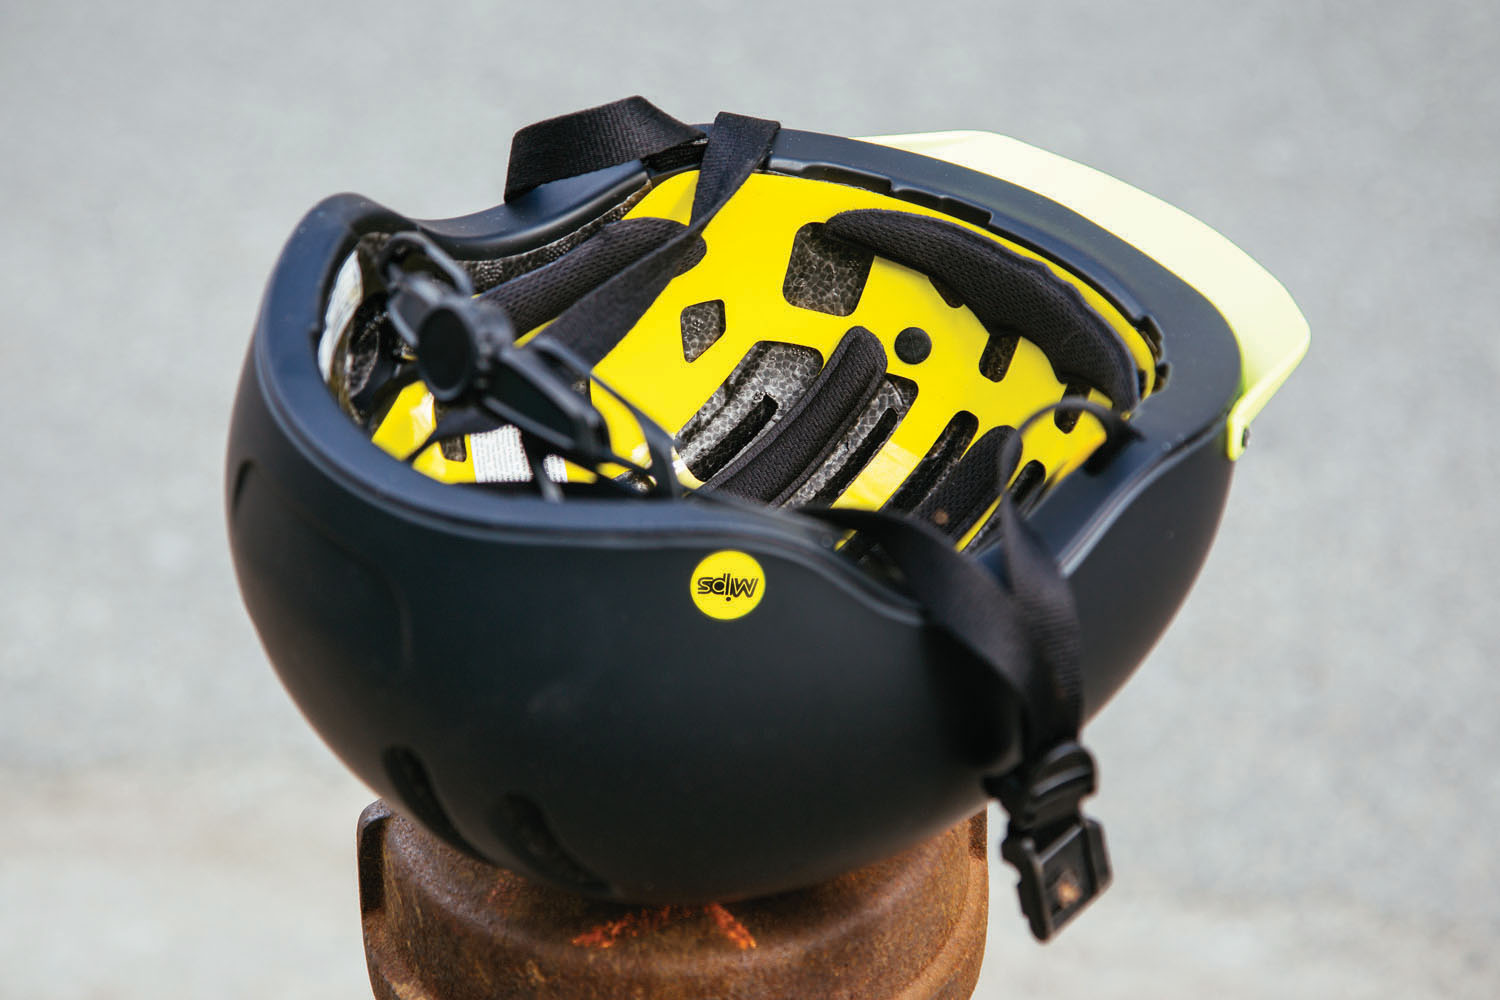 Thousand Chapter Helmet showing MIPS Technology